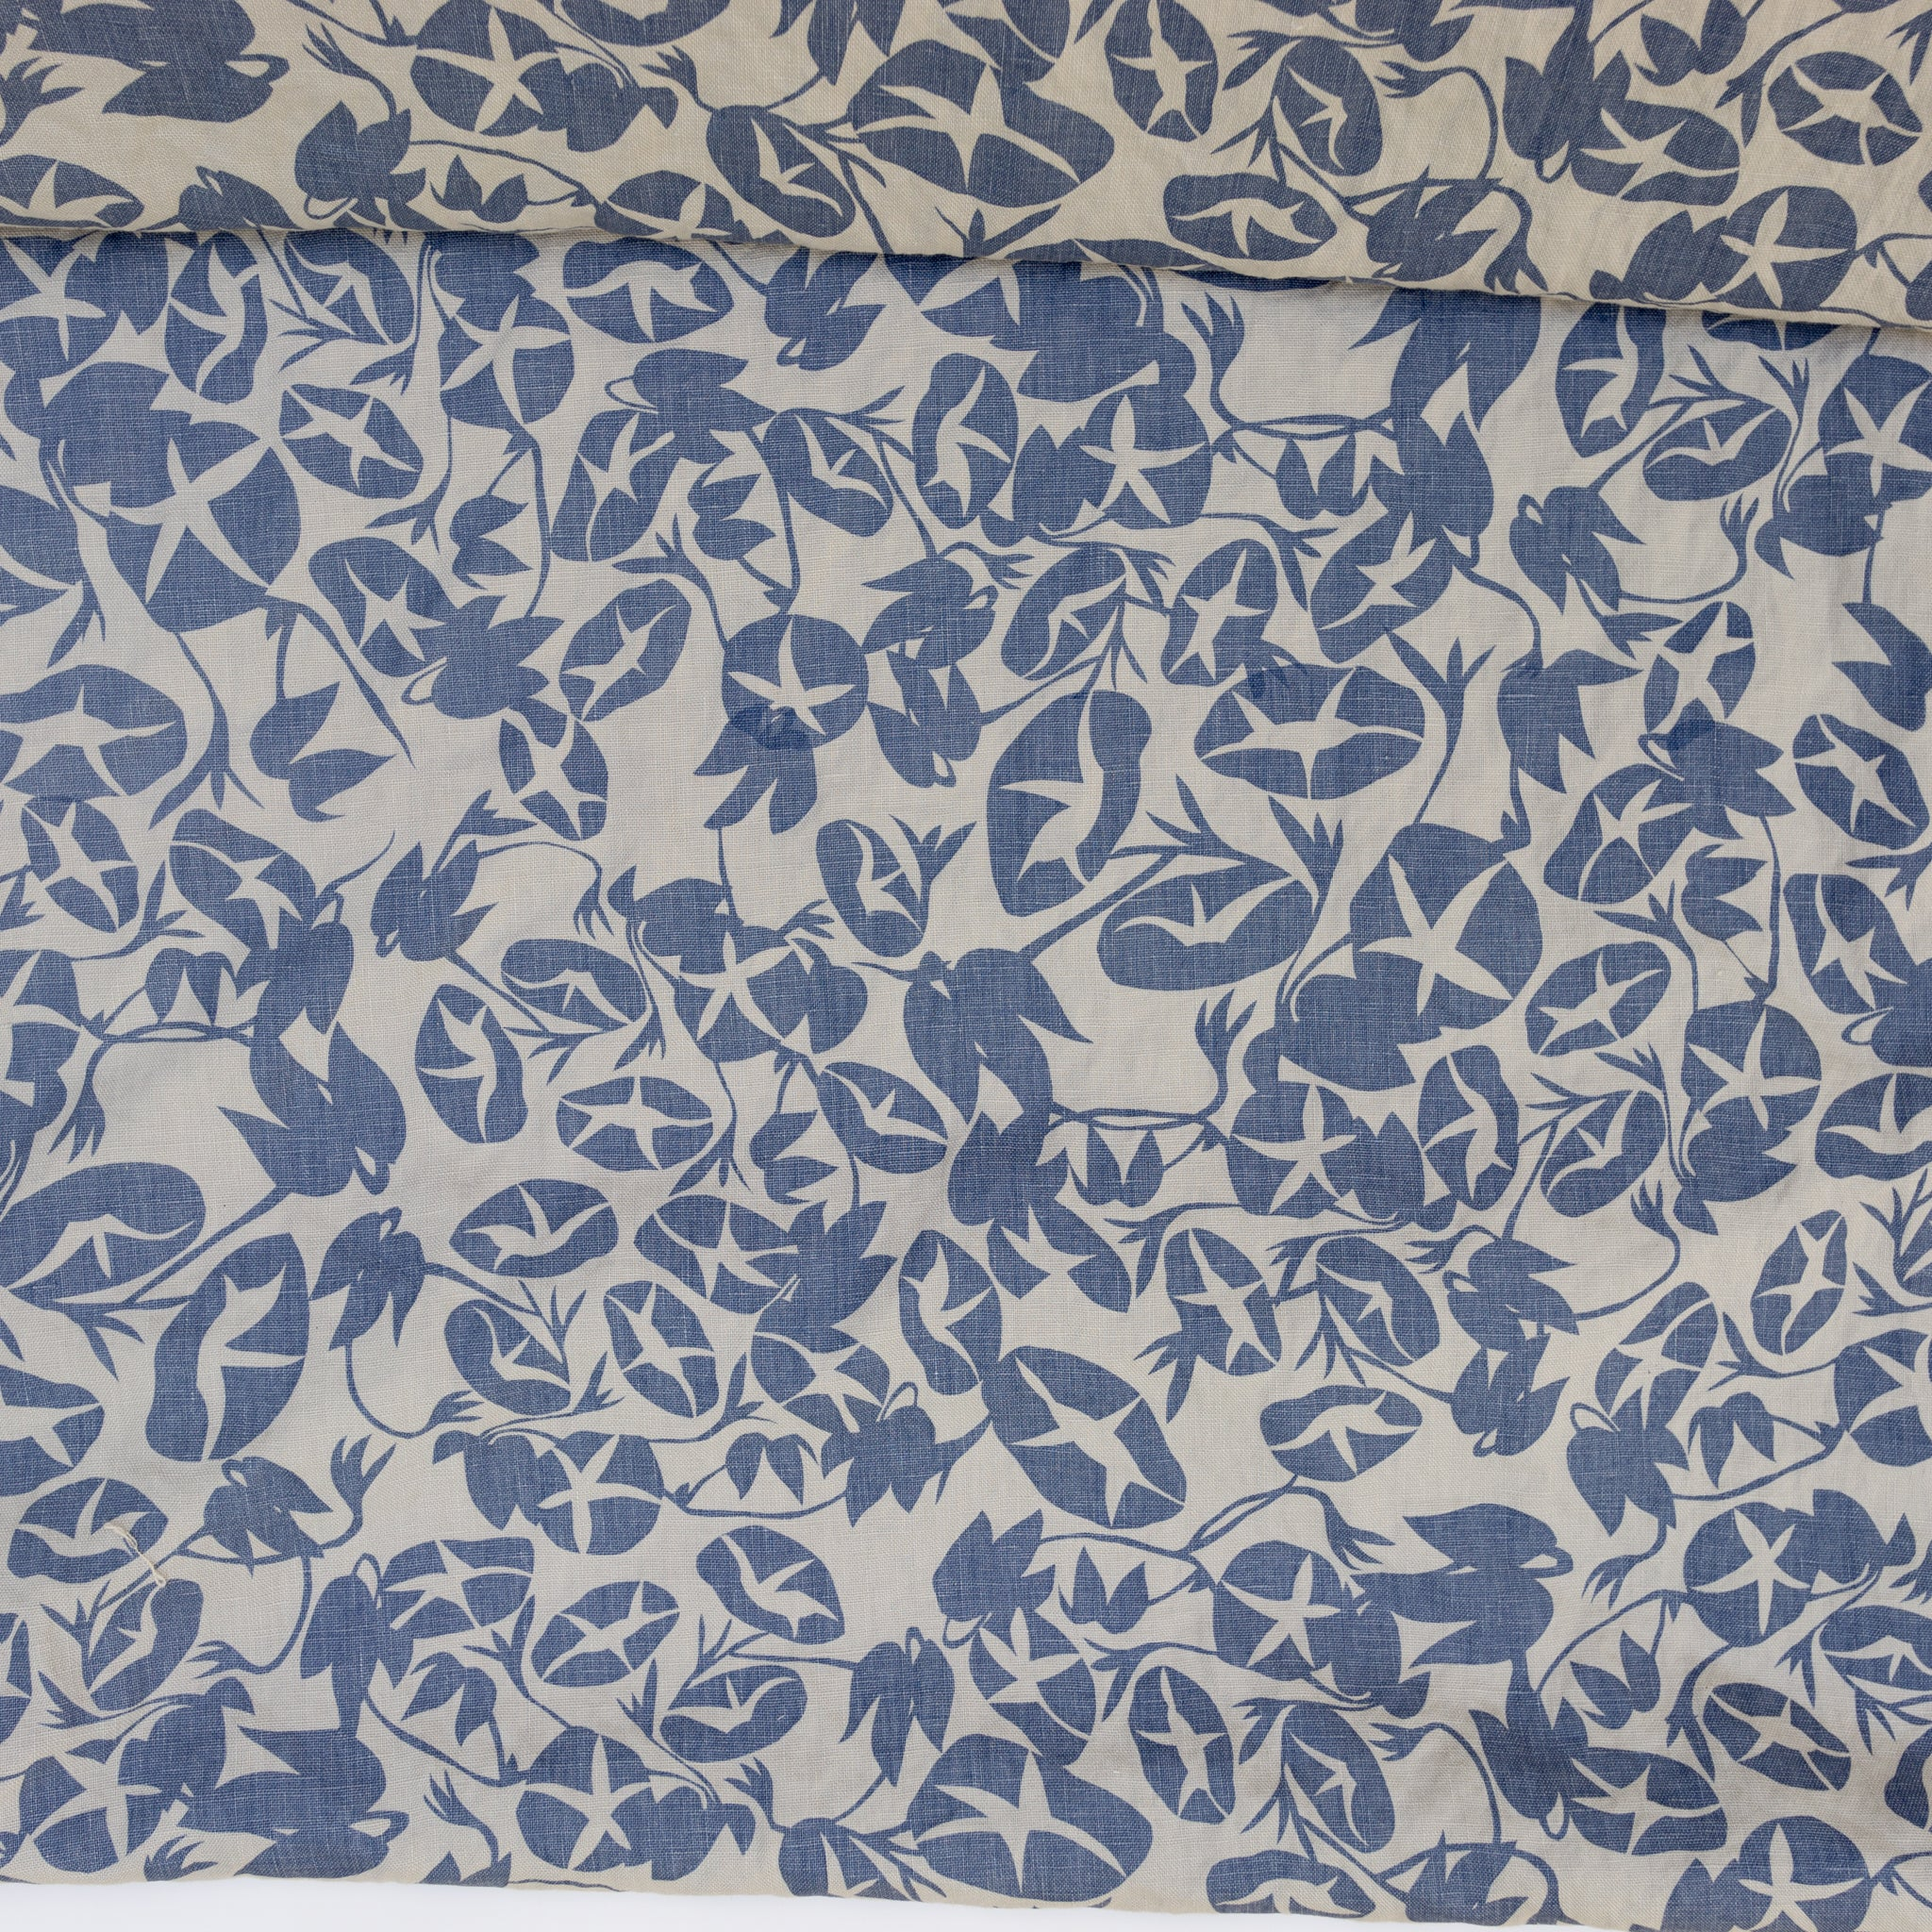 Screen printed fabric yardage with morning glory pattern